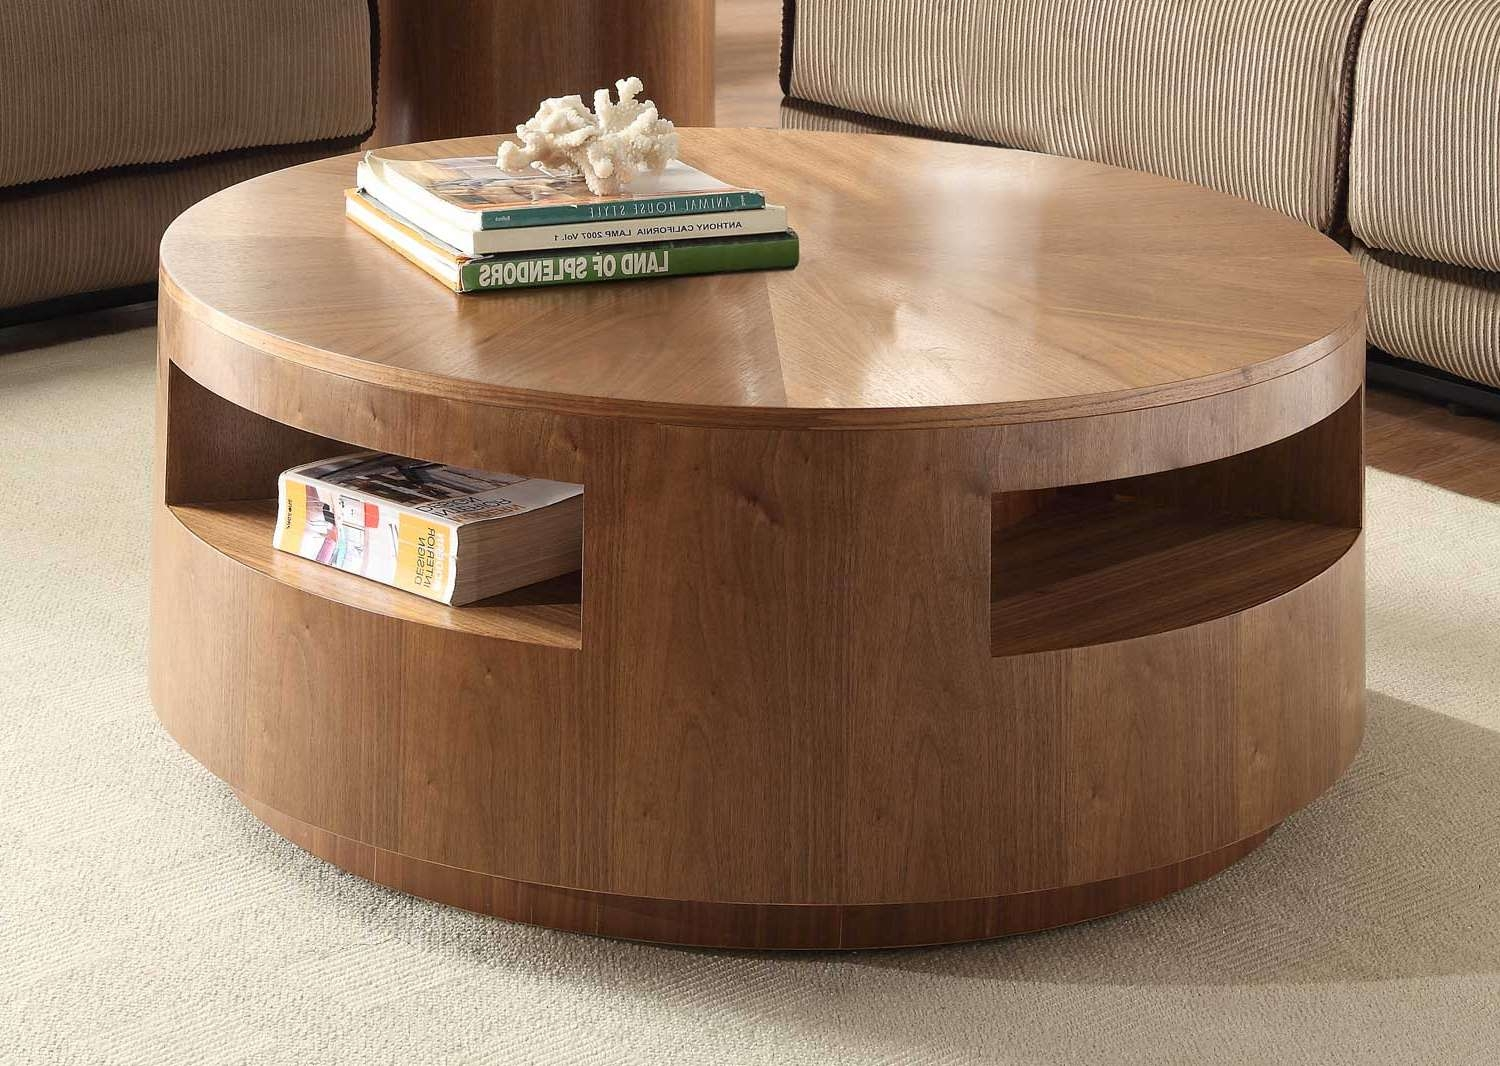 Homelegance Aquinnan Round Coffee Table With Casters – Natural In Most Recent Circular Coffee Tables With Storage (View 13 of 20)